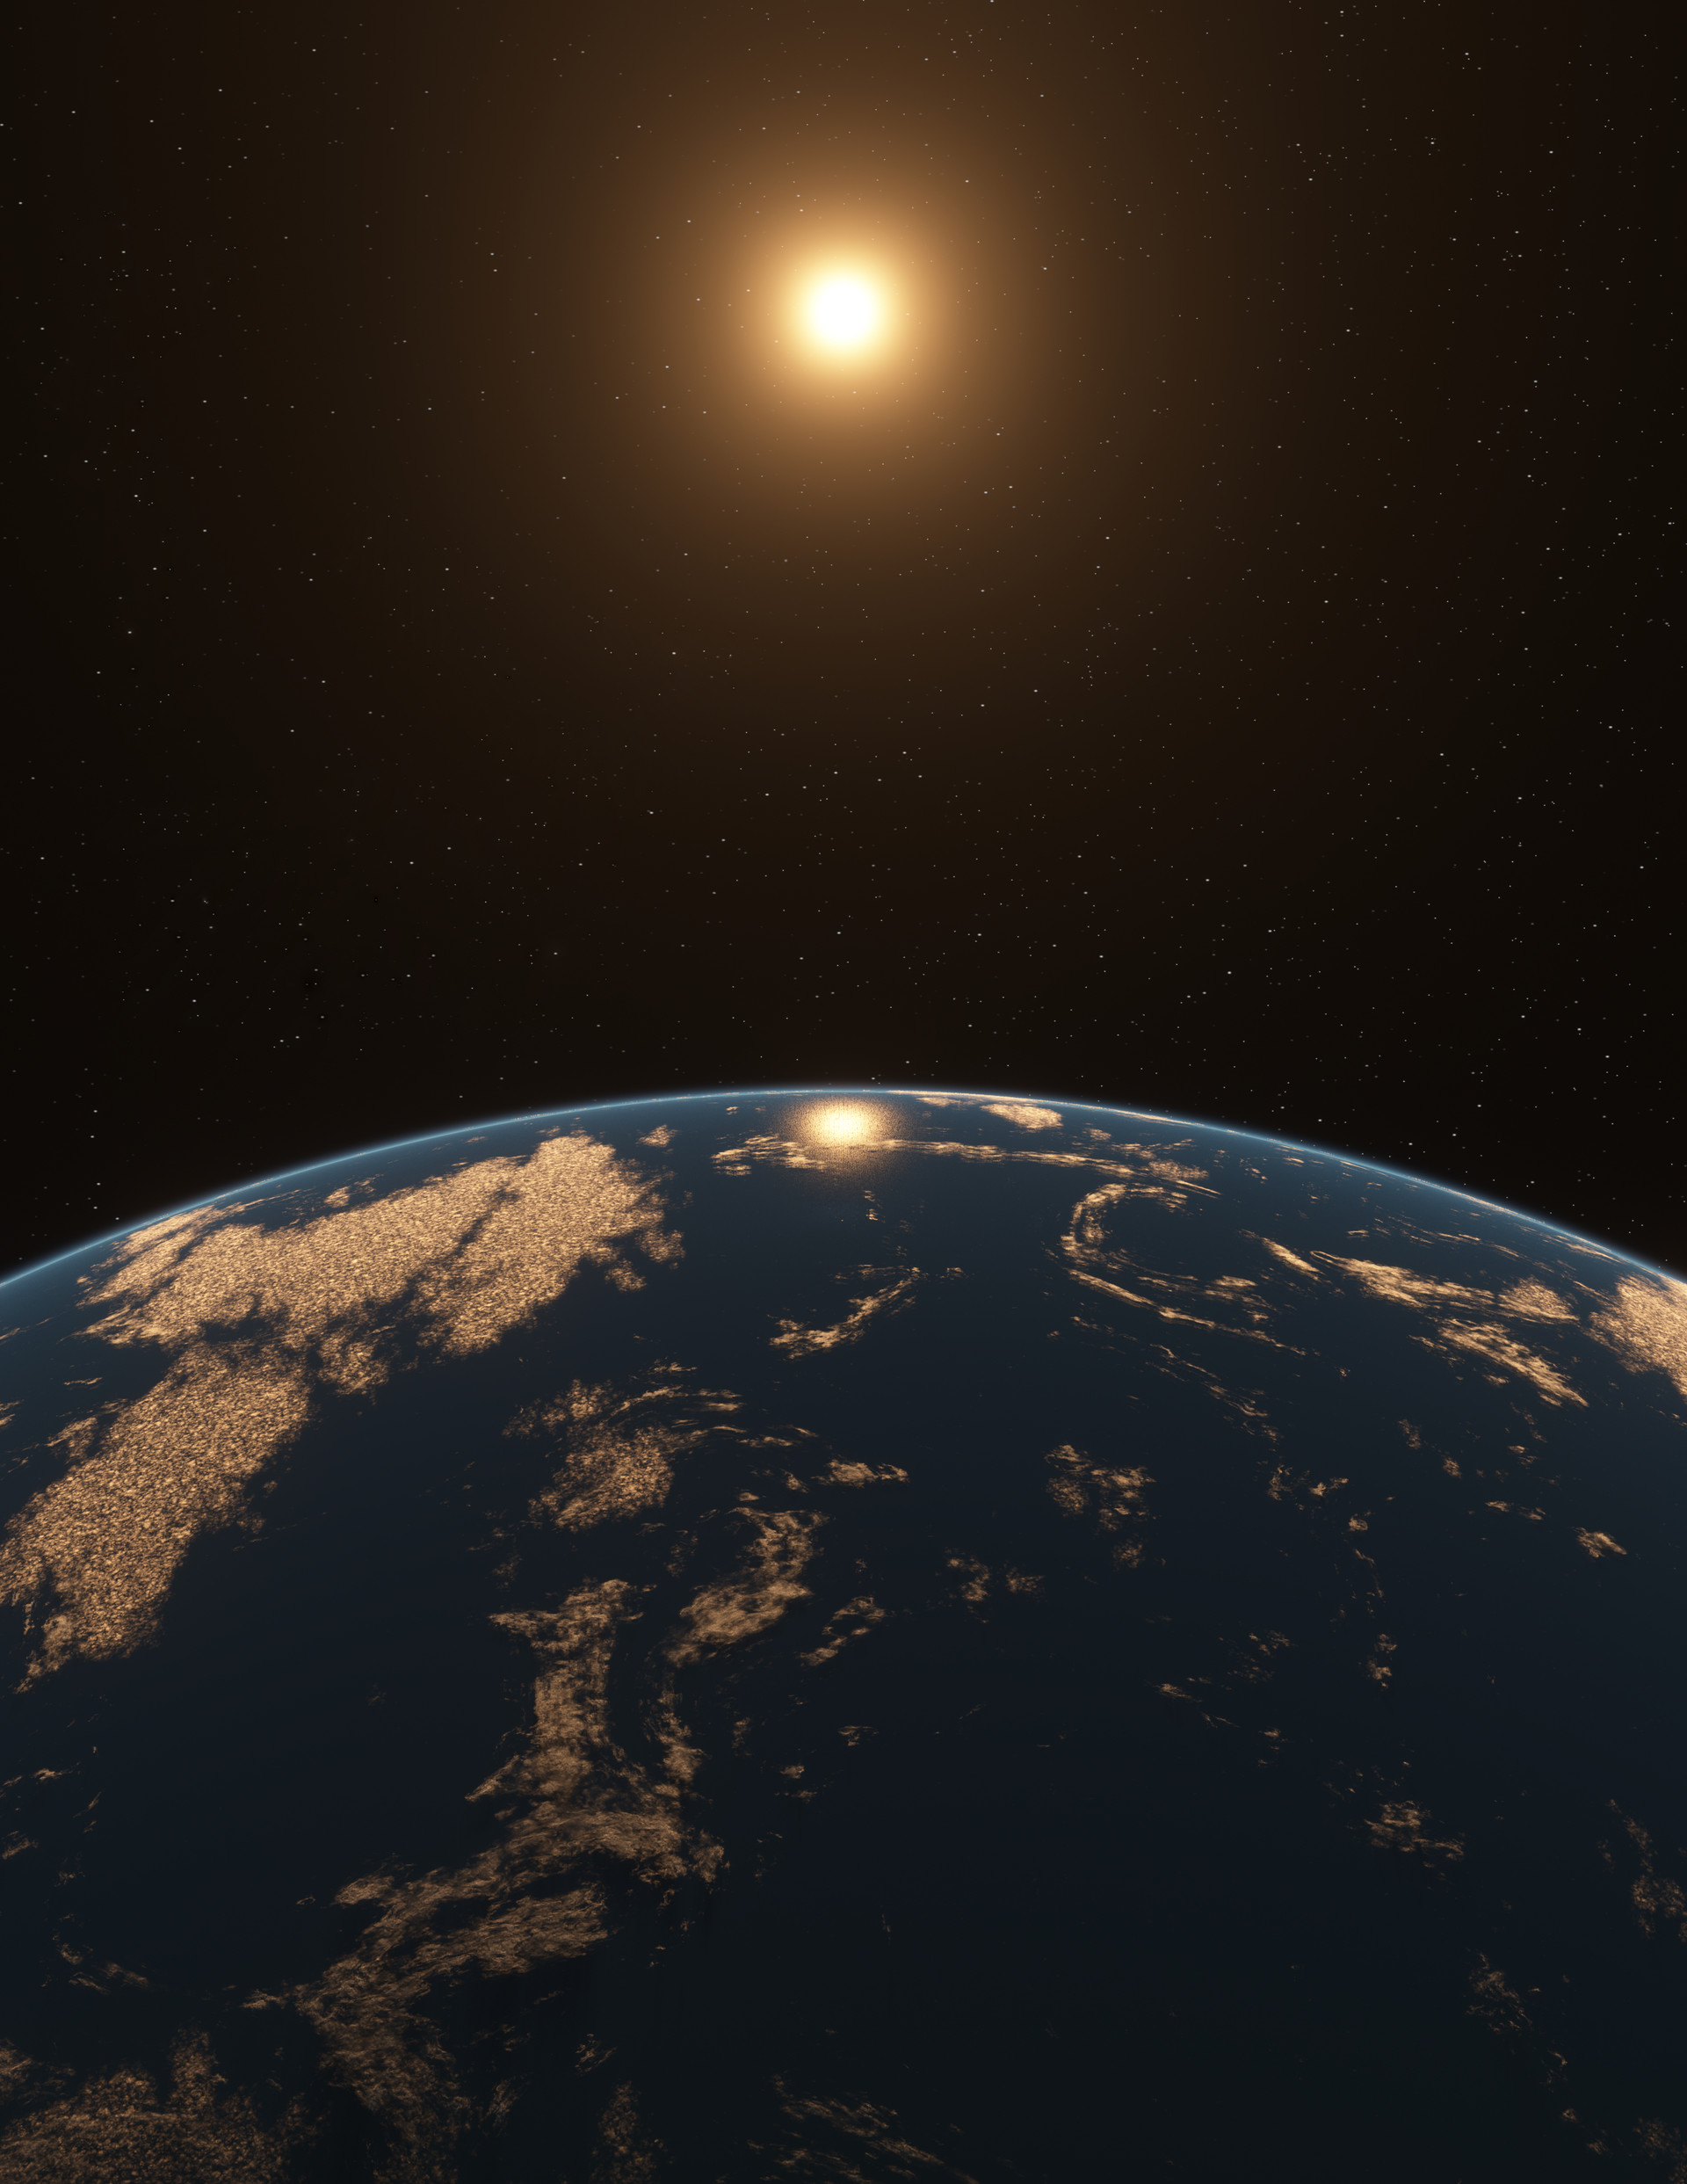 Ocean planet around an M-star. Final image chosen for cover.